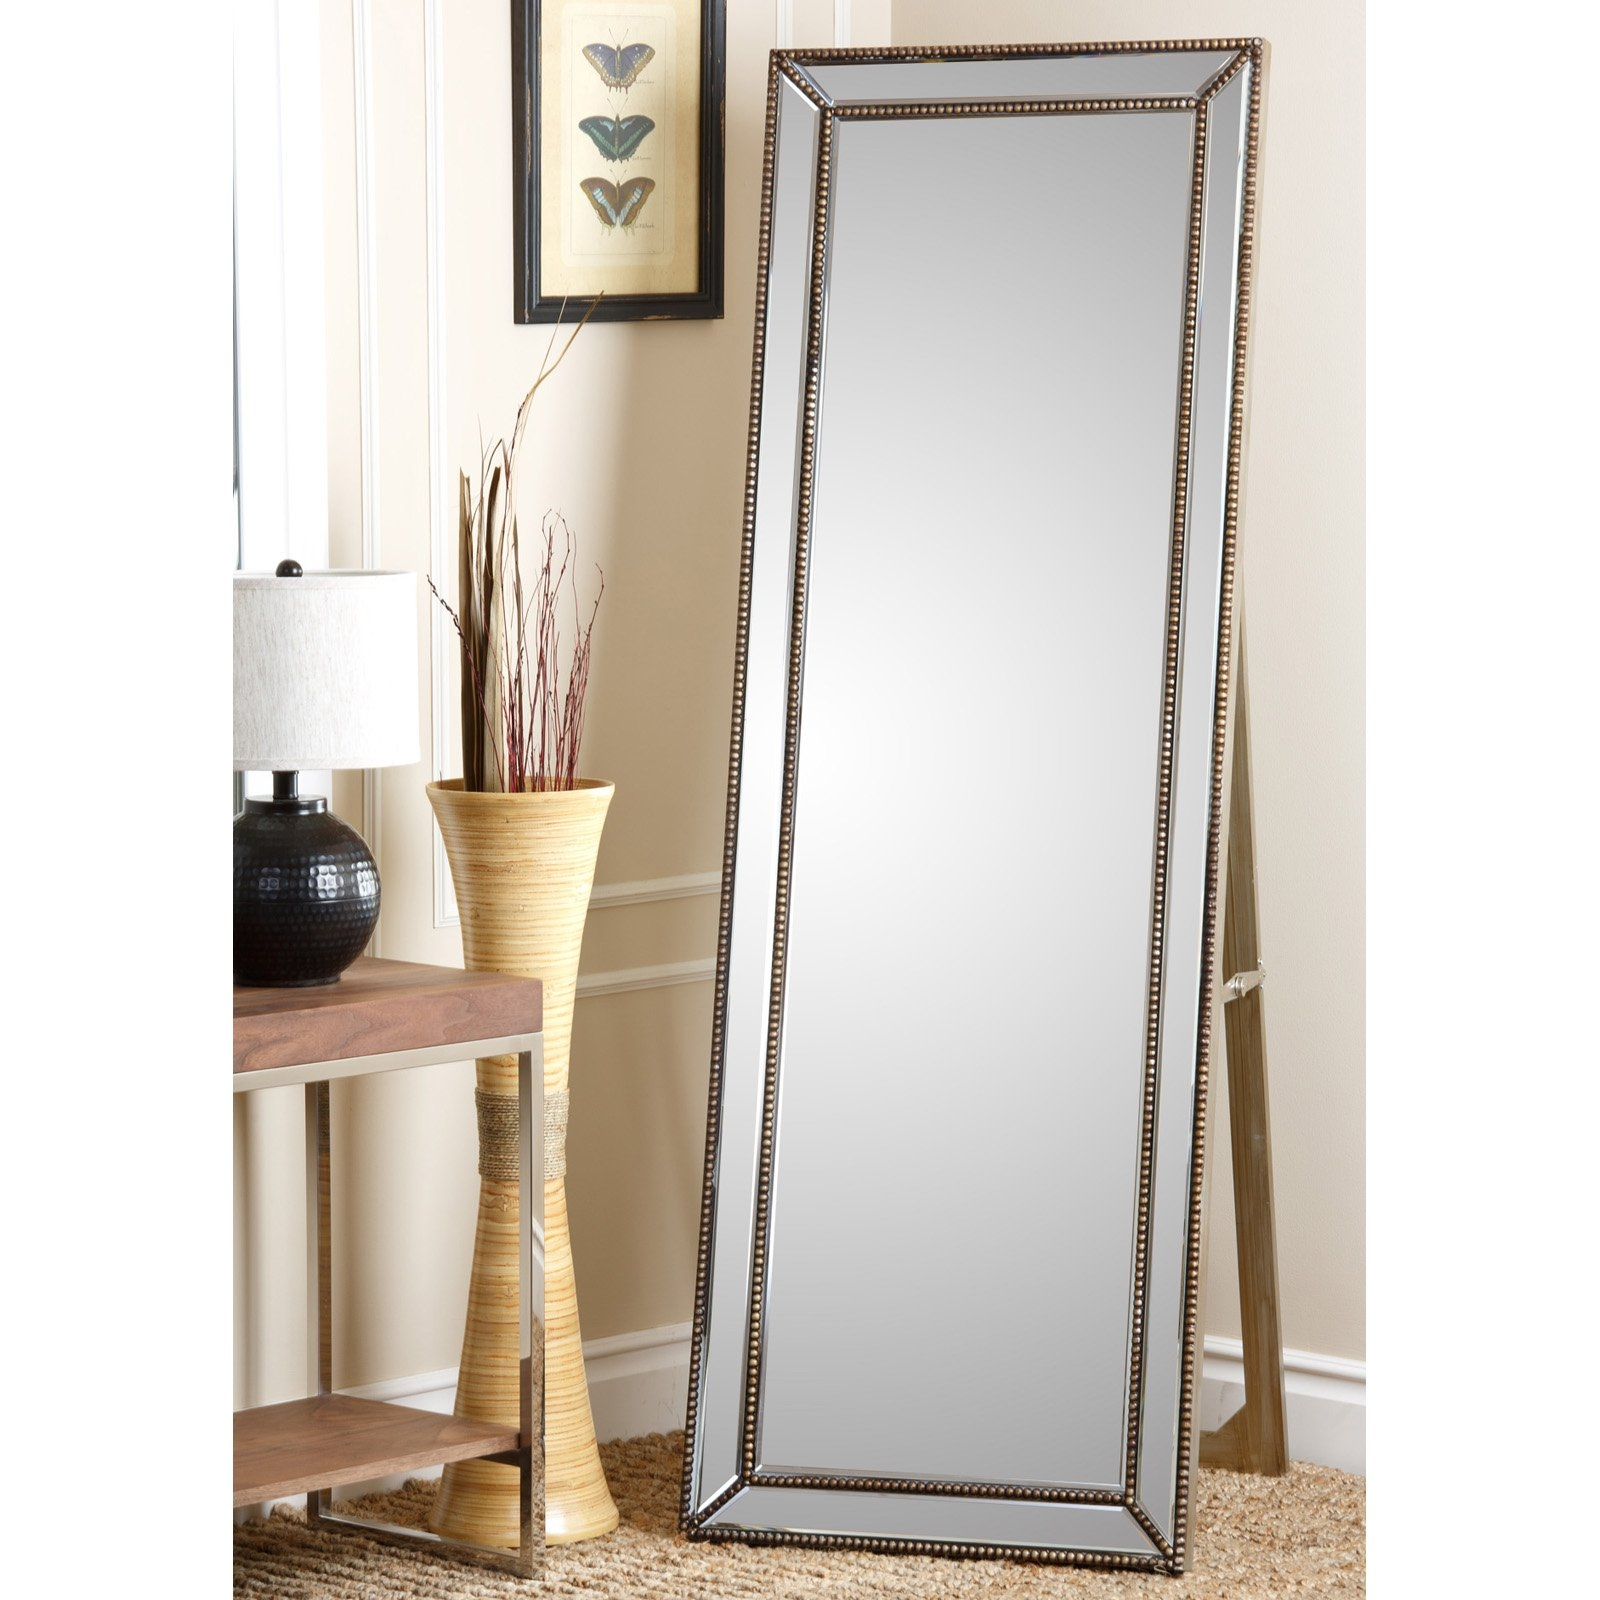 Silver Gold Full Length Cheval Floor Mirror 18w X 64h In Inside Silver Cheval Mirror (Image 13 of 15)